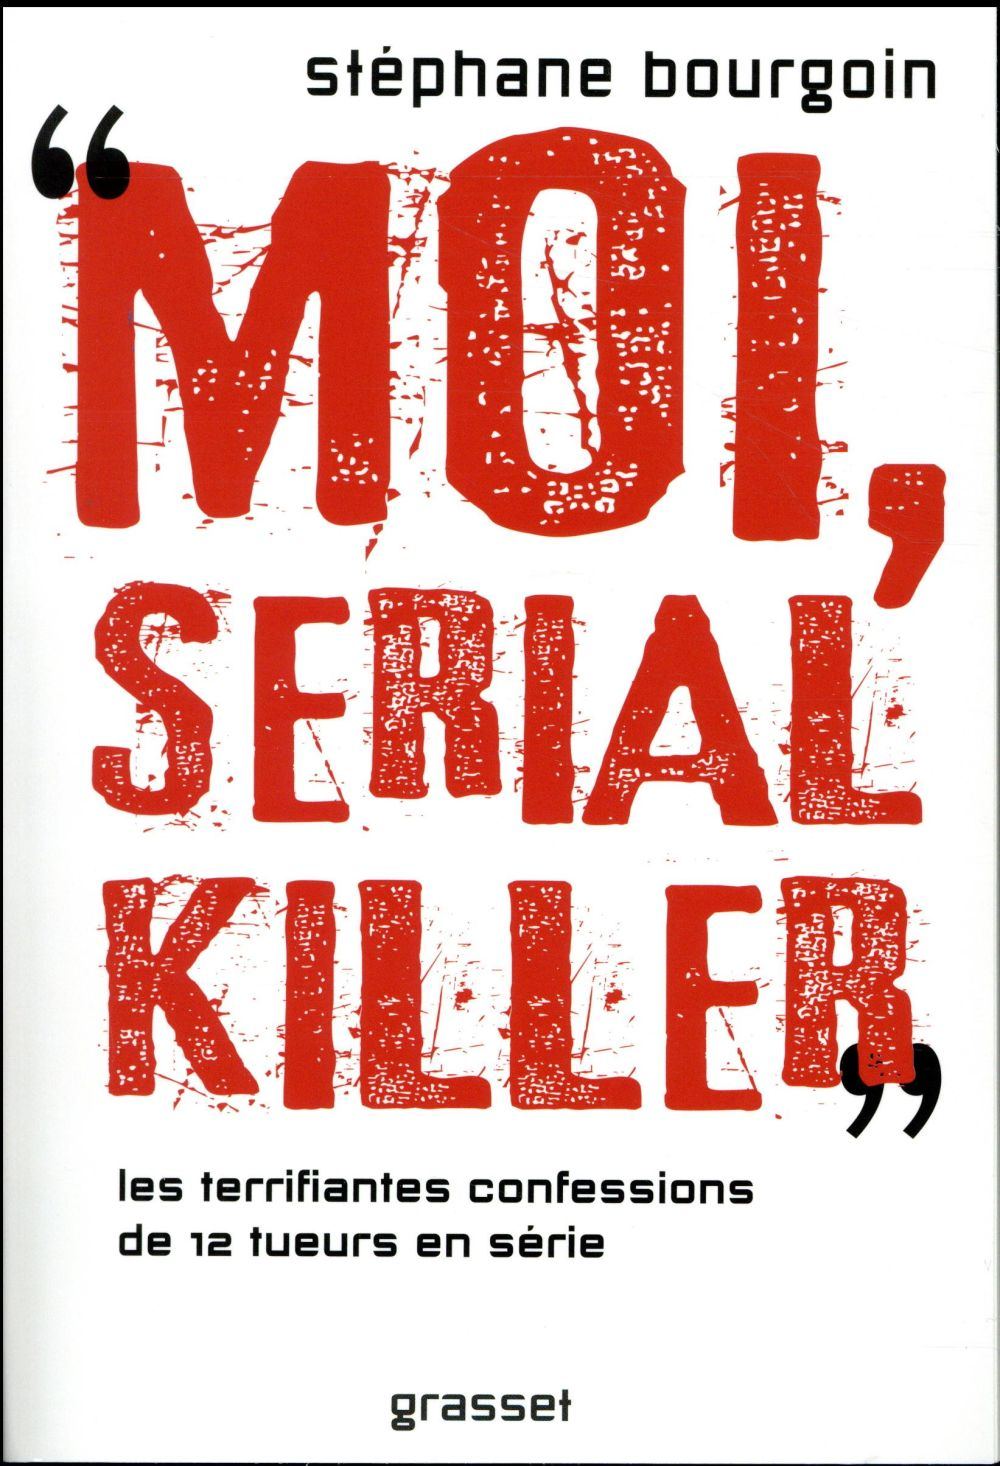 MOI, SERIAL KILLER BOURGOIN STEPHANE GRASSET